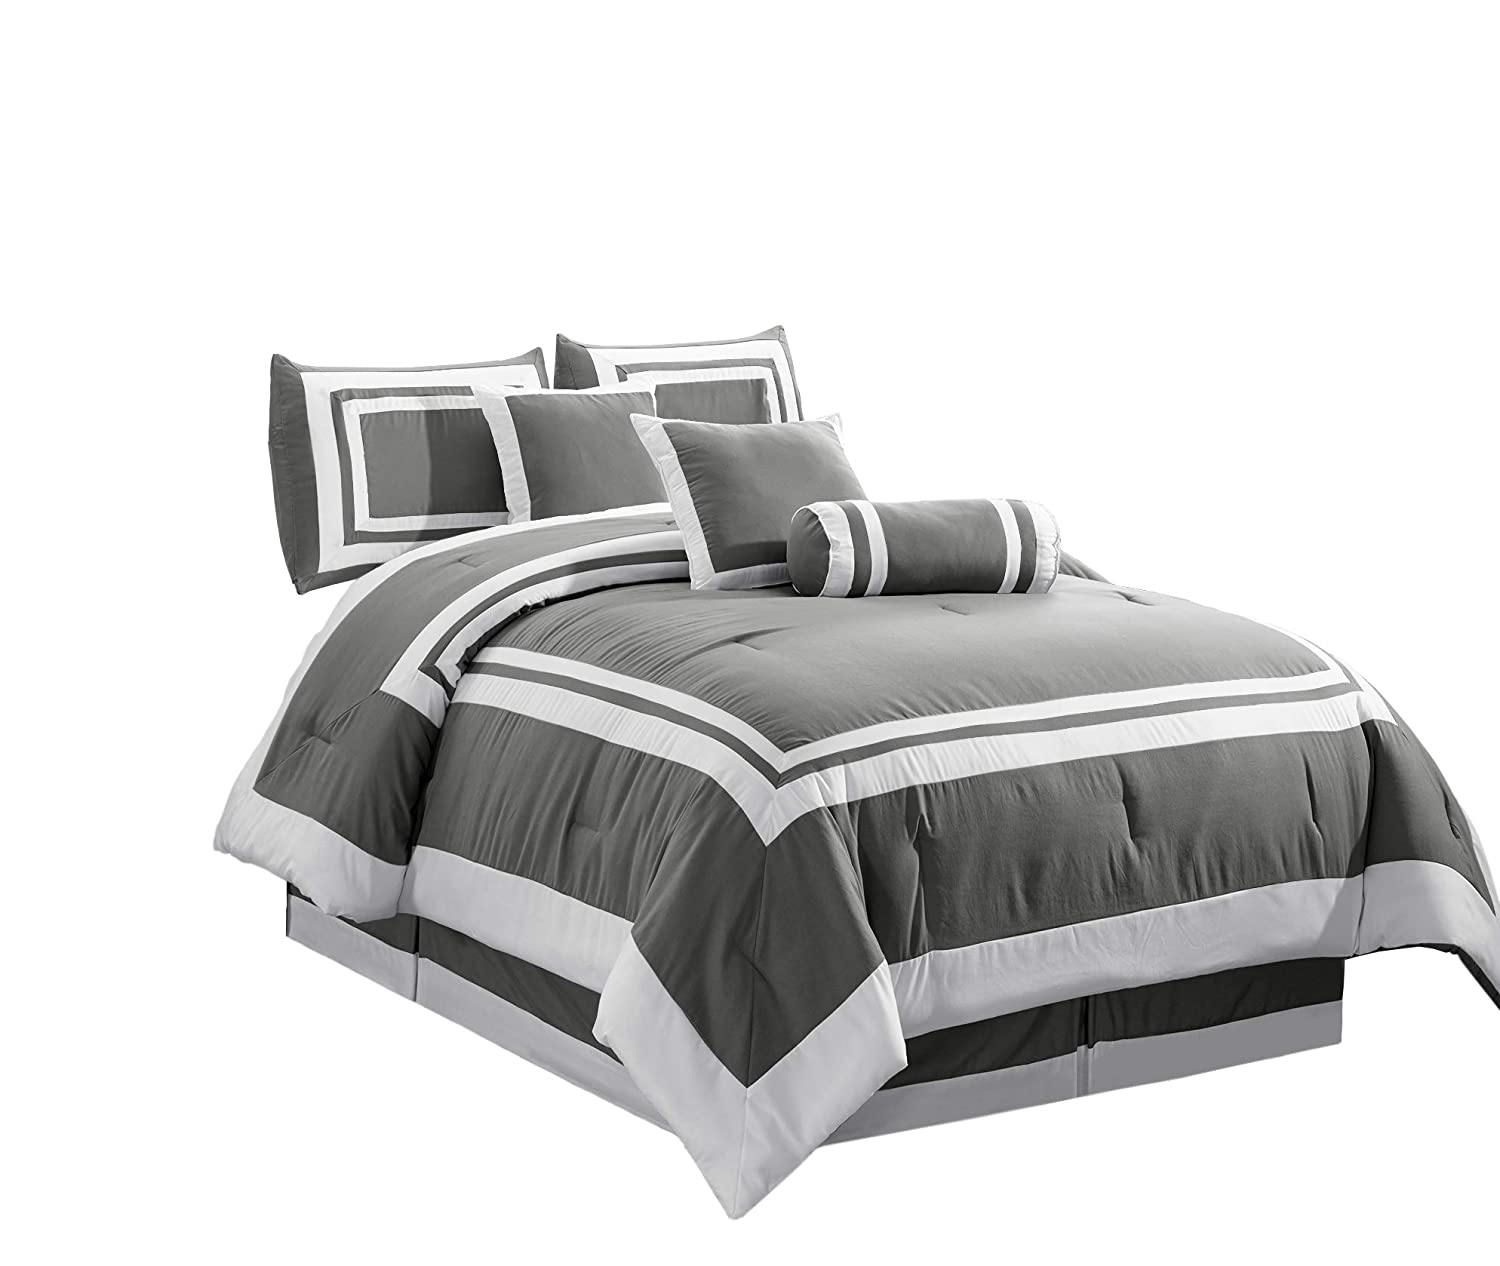 Chezmoi Collection 7 Pieces Caprice Gray/White Square Pattern Hotel Bedding Comforter Set (King, Gray/White)